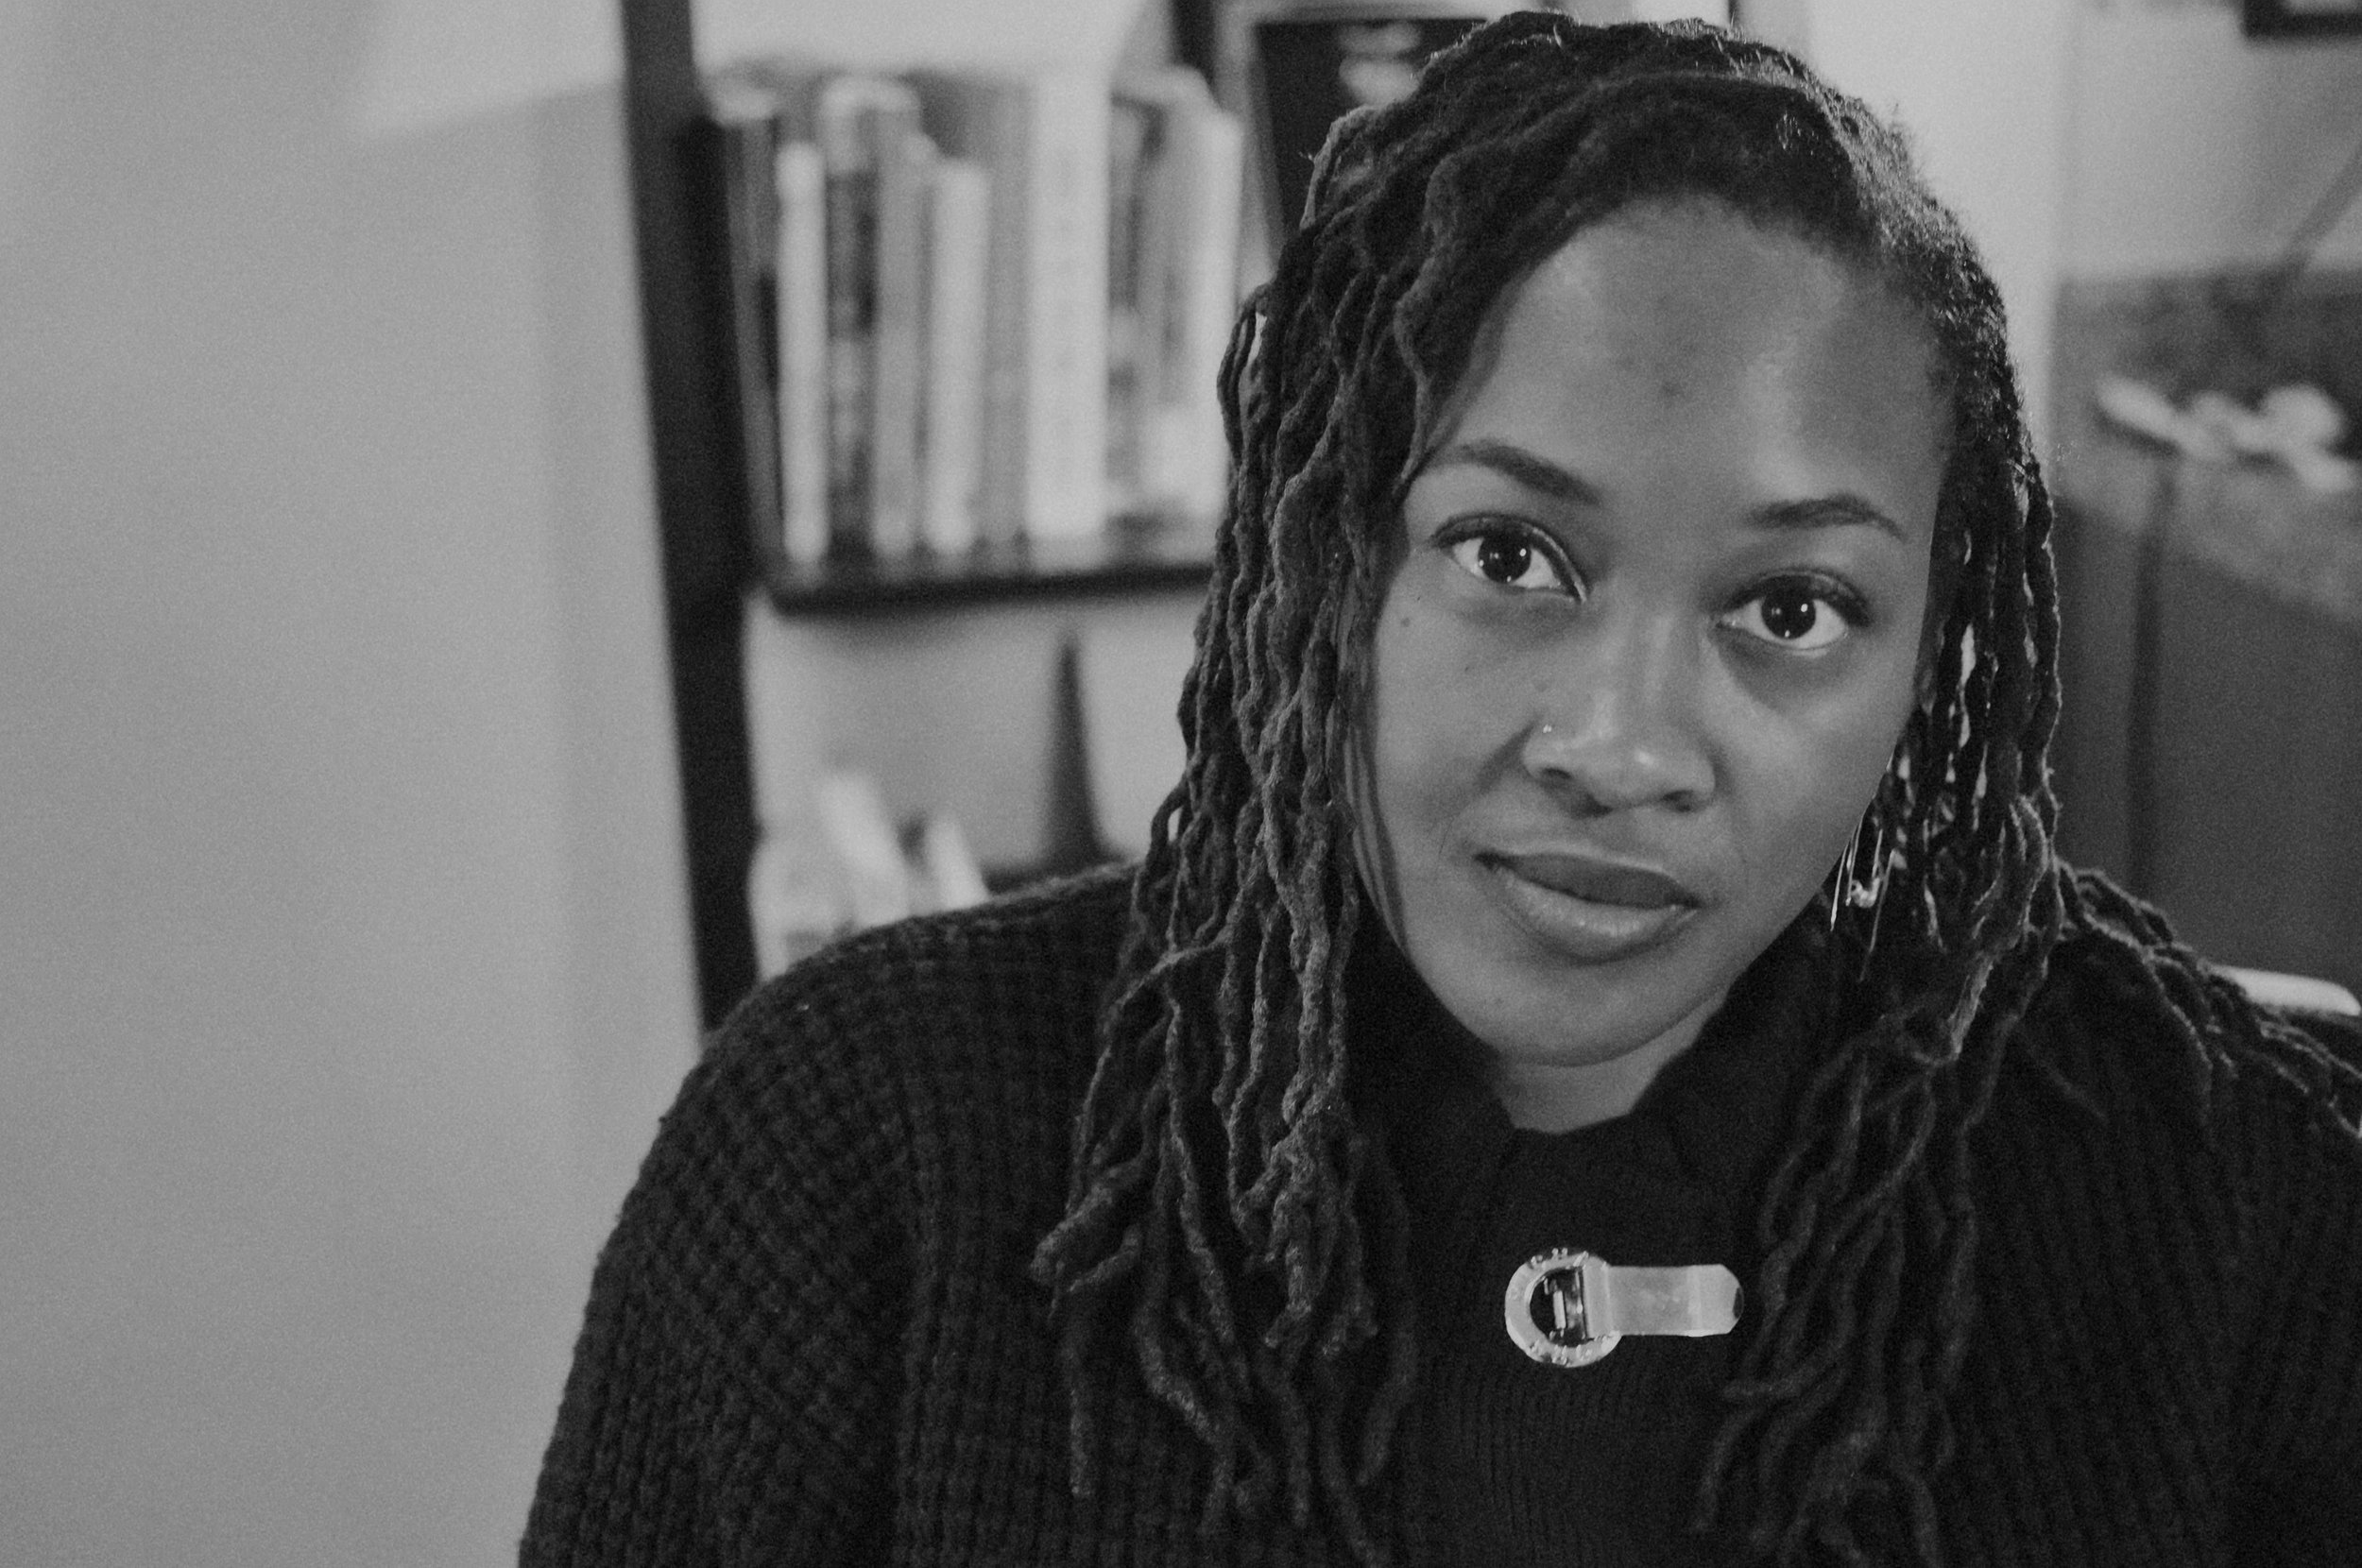 photo: Lina Cherfas   Naomi Jackson is the author of    The Star Side of Bird Hill   , published by Penguin Press in June 2015. The novel w  as nominated for an NAACP Image Award and the Hurston/Wright Legacy Award, and long-listed for the National Book Critics Circle's John Leonard Prize, the Center for Fiction's First Novel Prize, and the     International Dublin Literary Award, among other accolades.     Naomi studied fiction at the Iowa Writers' Workshop. She traveled to South Africa on a Fulbright scholarship, where she received an M.A. in Creative Writing from the University of Cape Town. She is a graduate of Williams College. Naomi's work has appeared in literary journals and magazines in the United States and abroad. She is the recipient of residencies and fellowships from Bread Loaf, MacDowell Colony, the University of Pennsylvania's    Kelly Writers House   ,    Hedgebrook   , and the    Camargo    Foundation.    Naomi has taught at the University of Iowa, University of Pennsylvania, City College of New York, and Oberlin College. She is currently the Visiting Writer at Amherst College. Jackson     was born and raised in Brooklyn by West Indian parents.